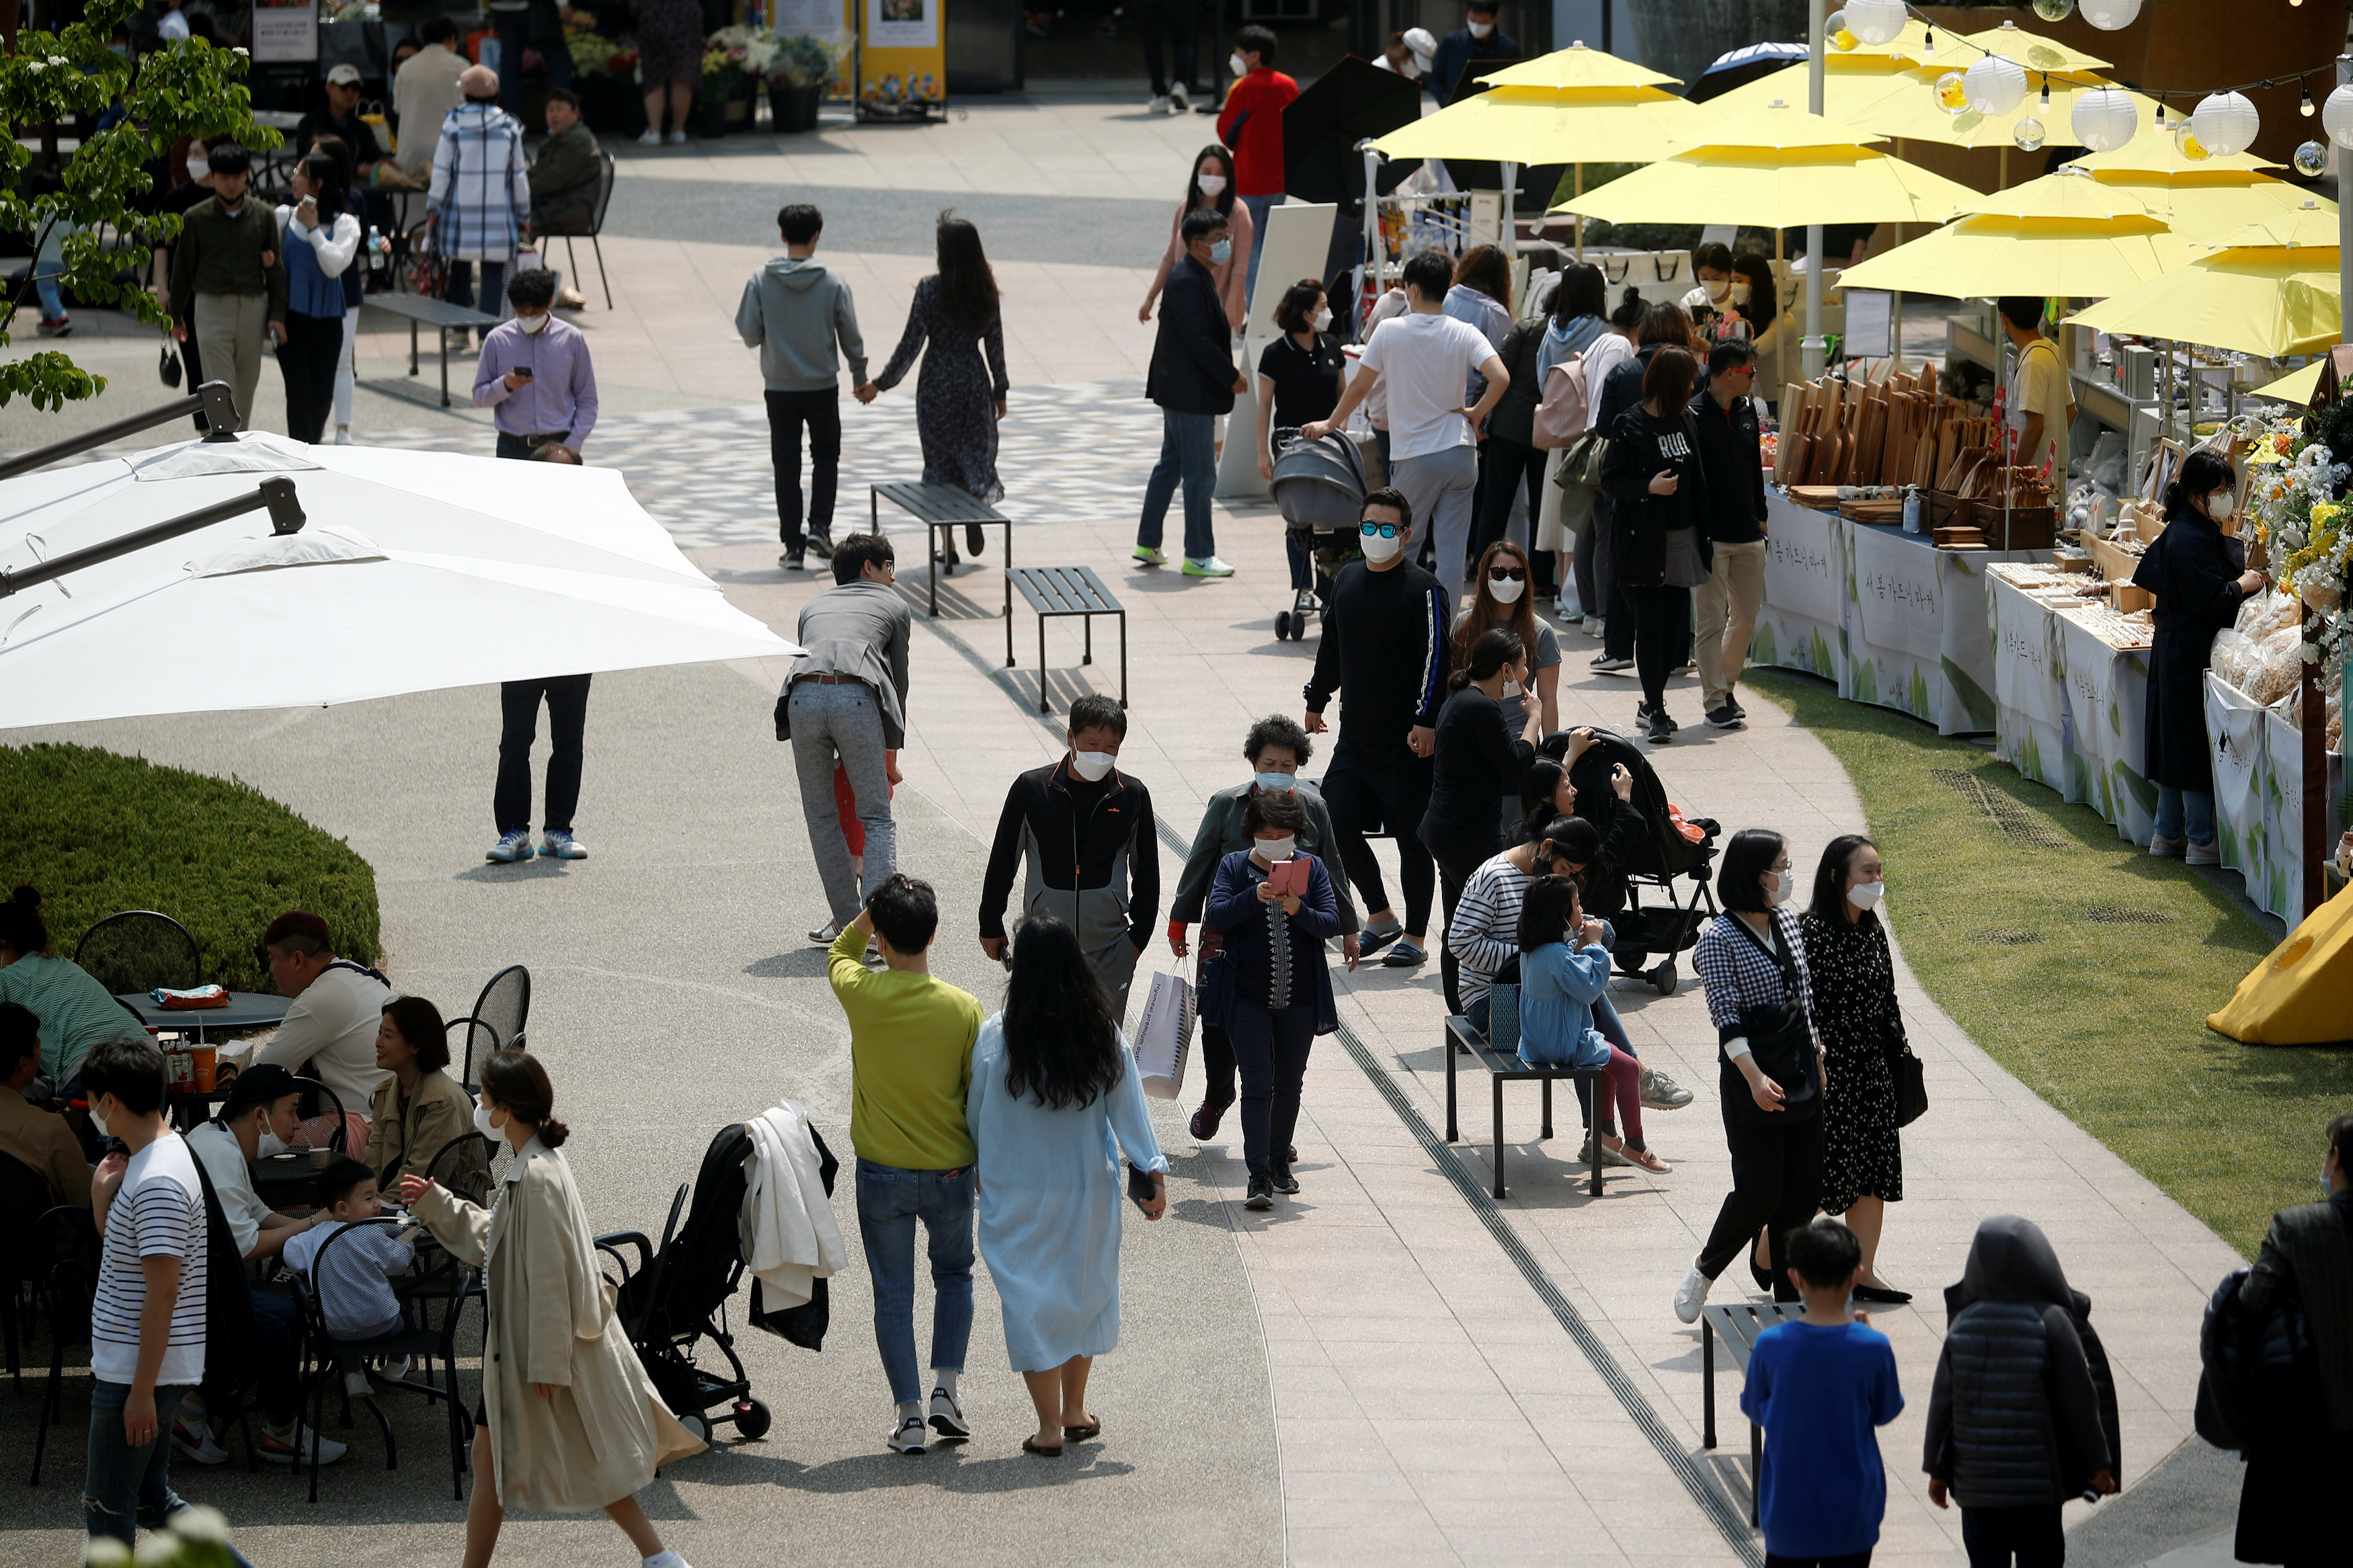 People wearing masks to avoid the spread of the coronavirus disease (COVID-19) shop at an outlet mall in Gimpo